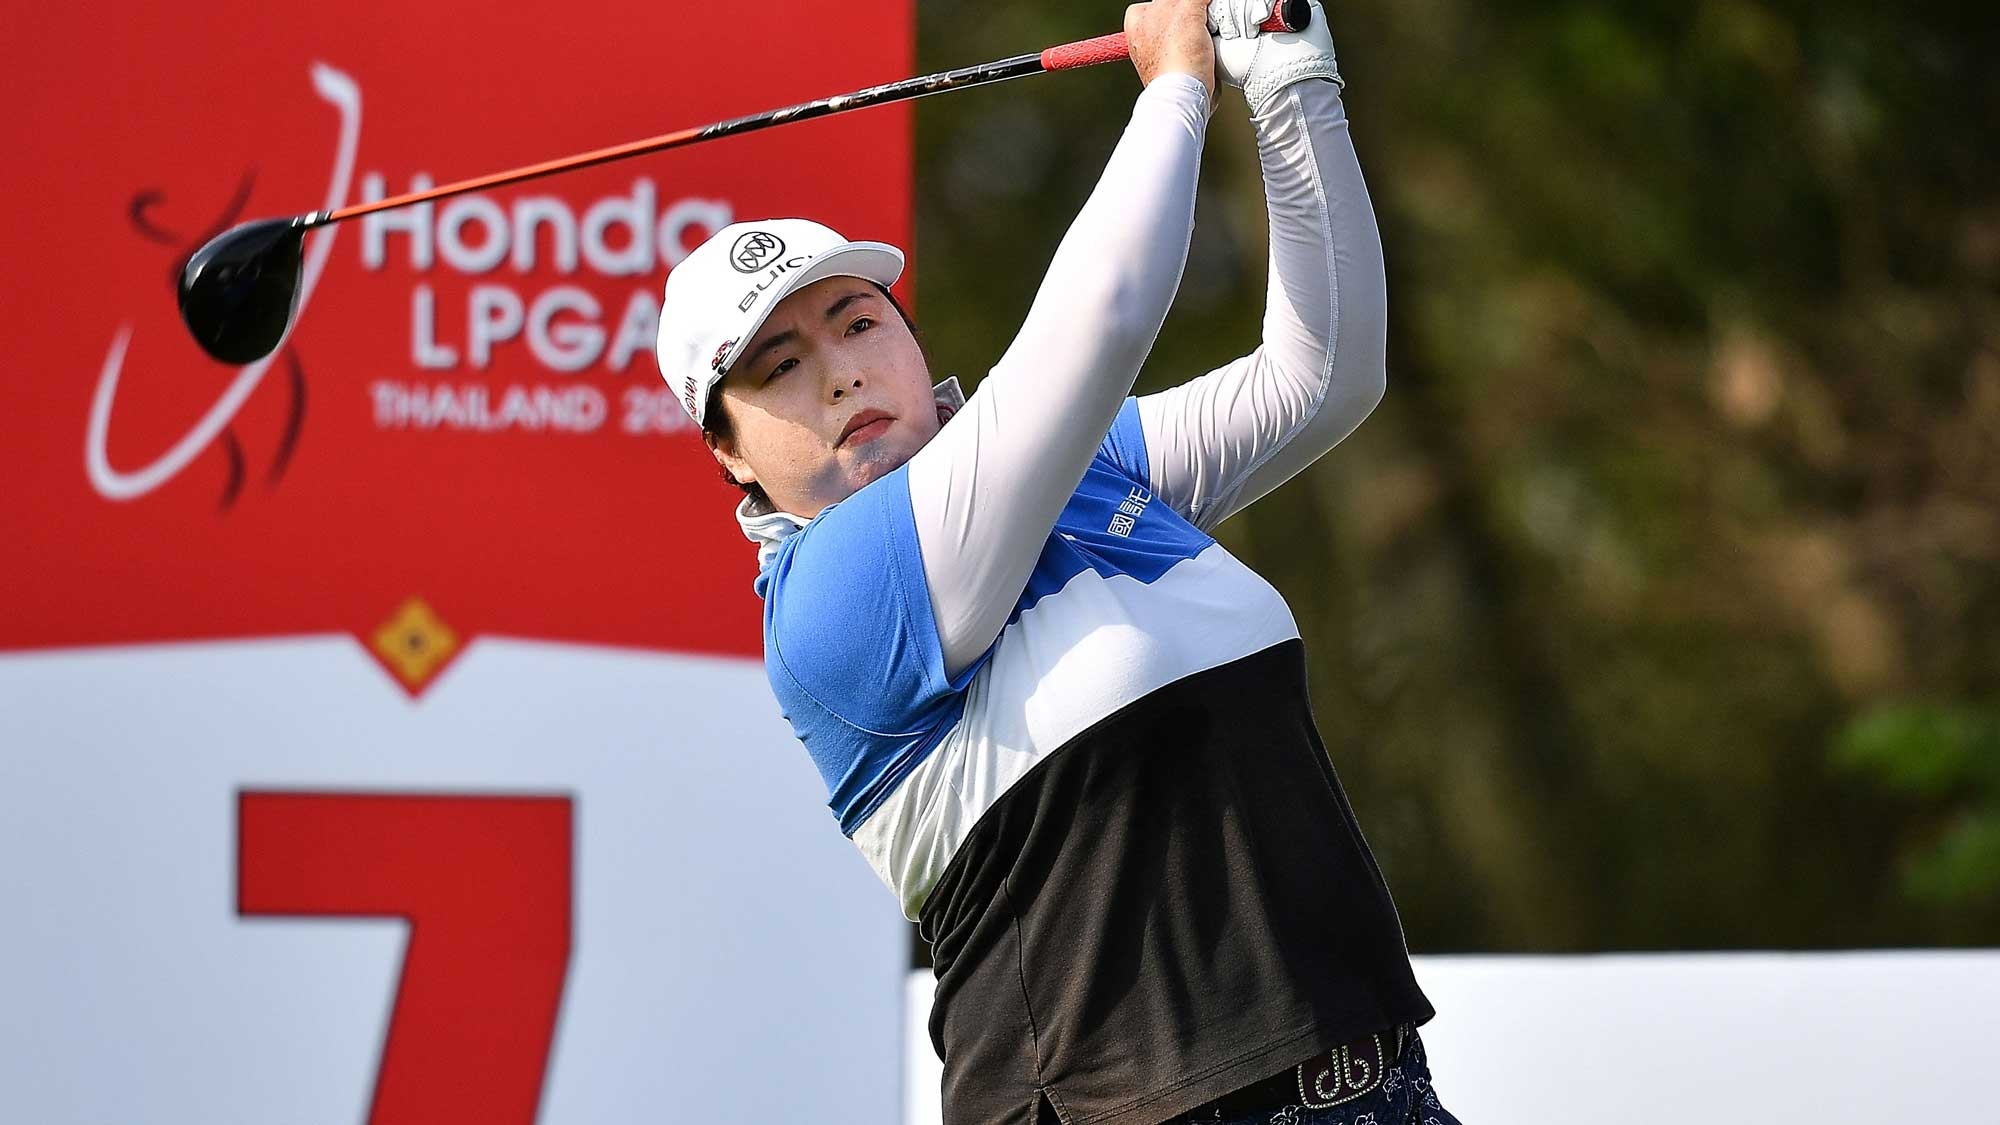 Shanshan Feng of China tee off at 7th hole during the Honda LPGA Thailand